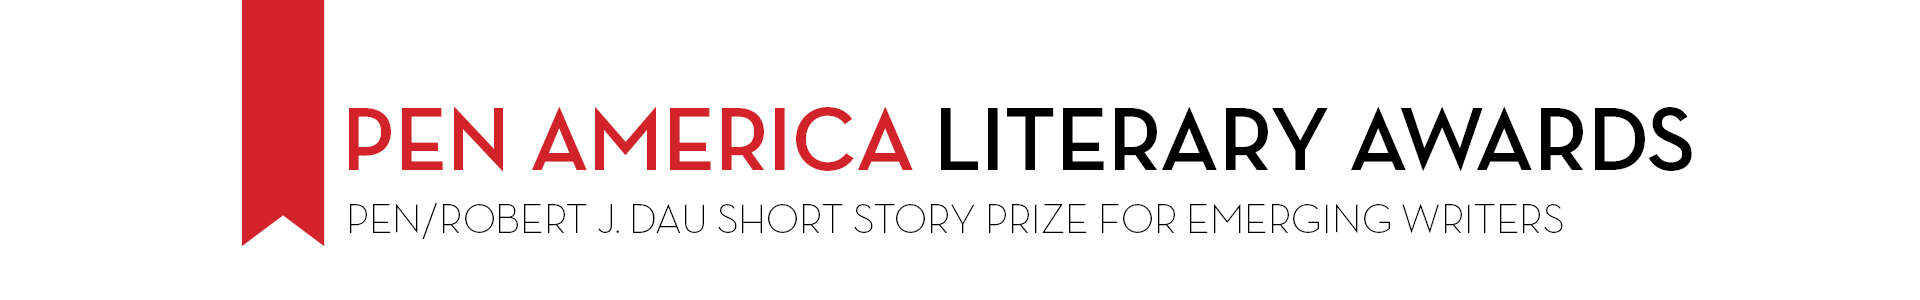 PEN America Literary Award PEN/Dau Short Story Prize for Emerging Writers